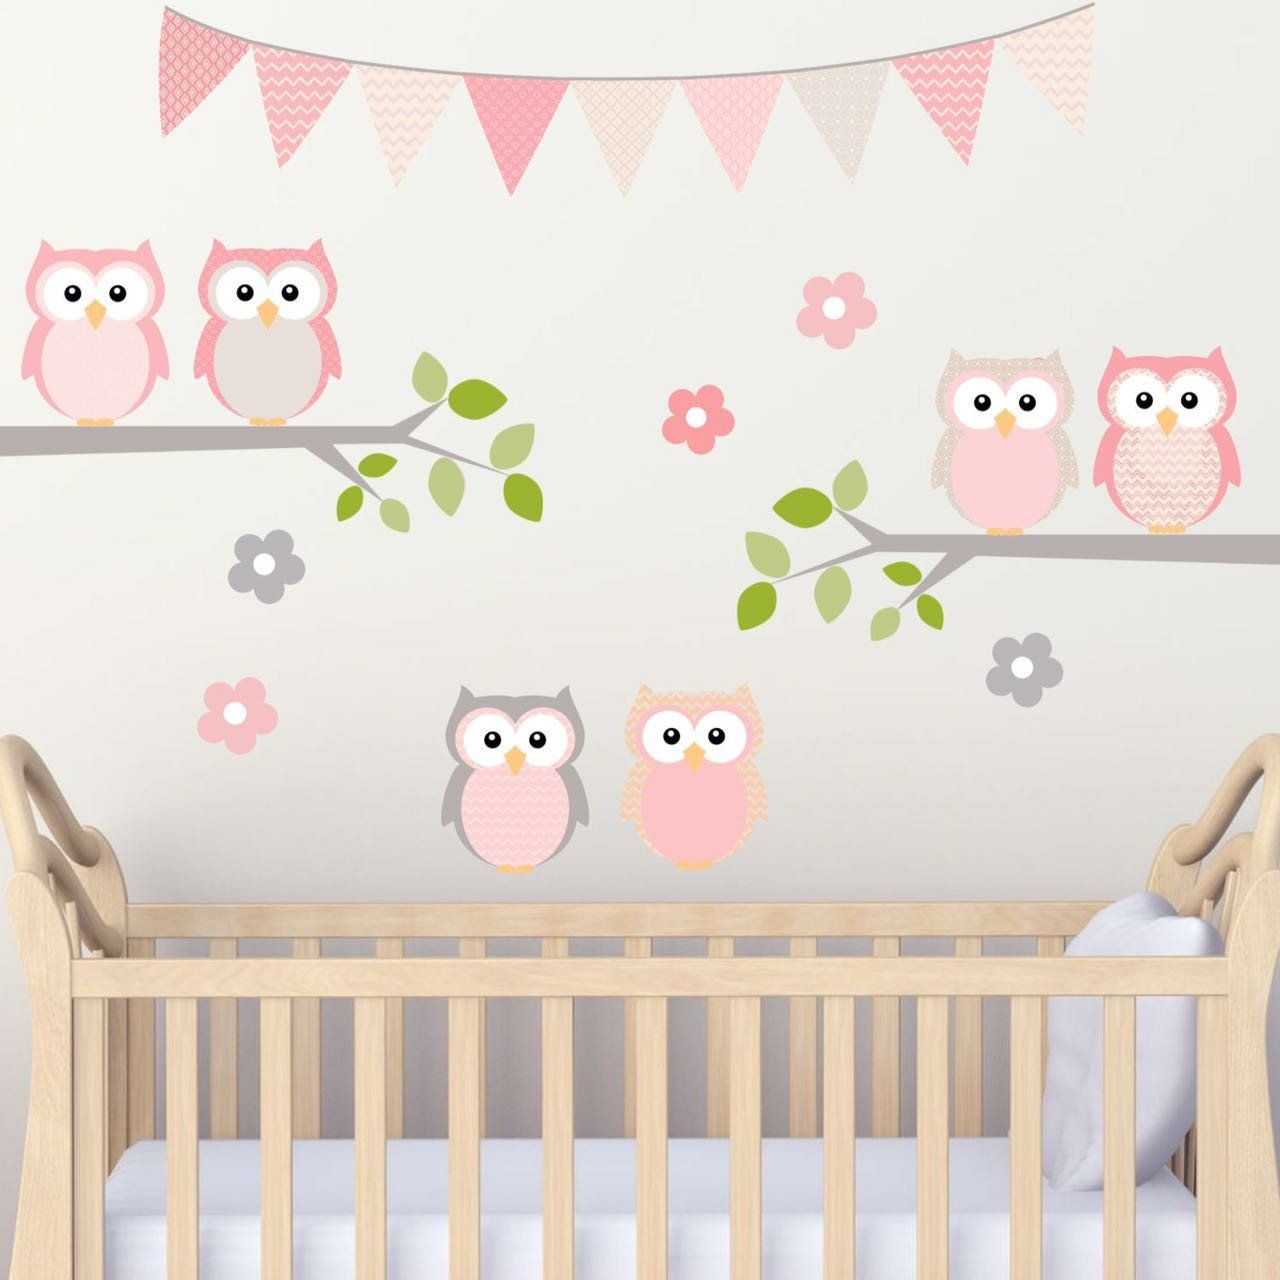 Nursery room owls on branch pink and grey woven fabric adhesive